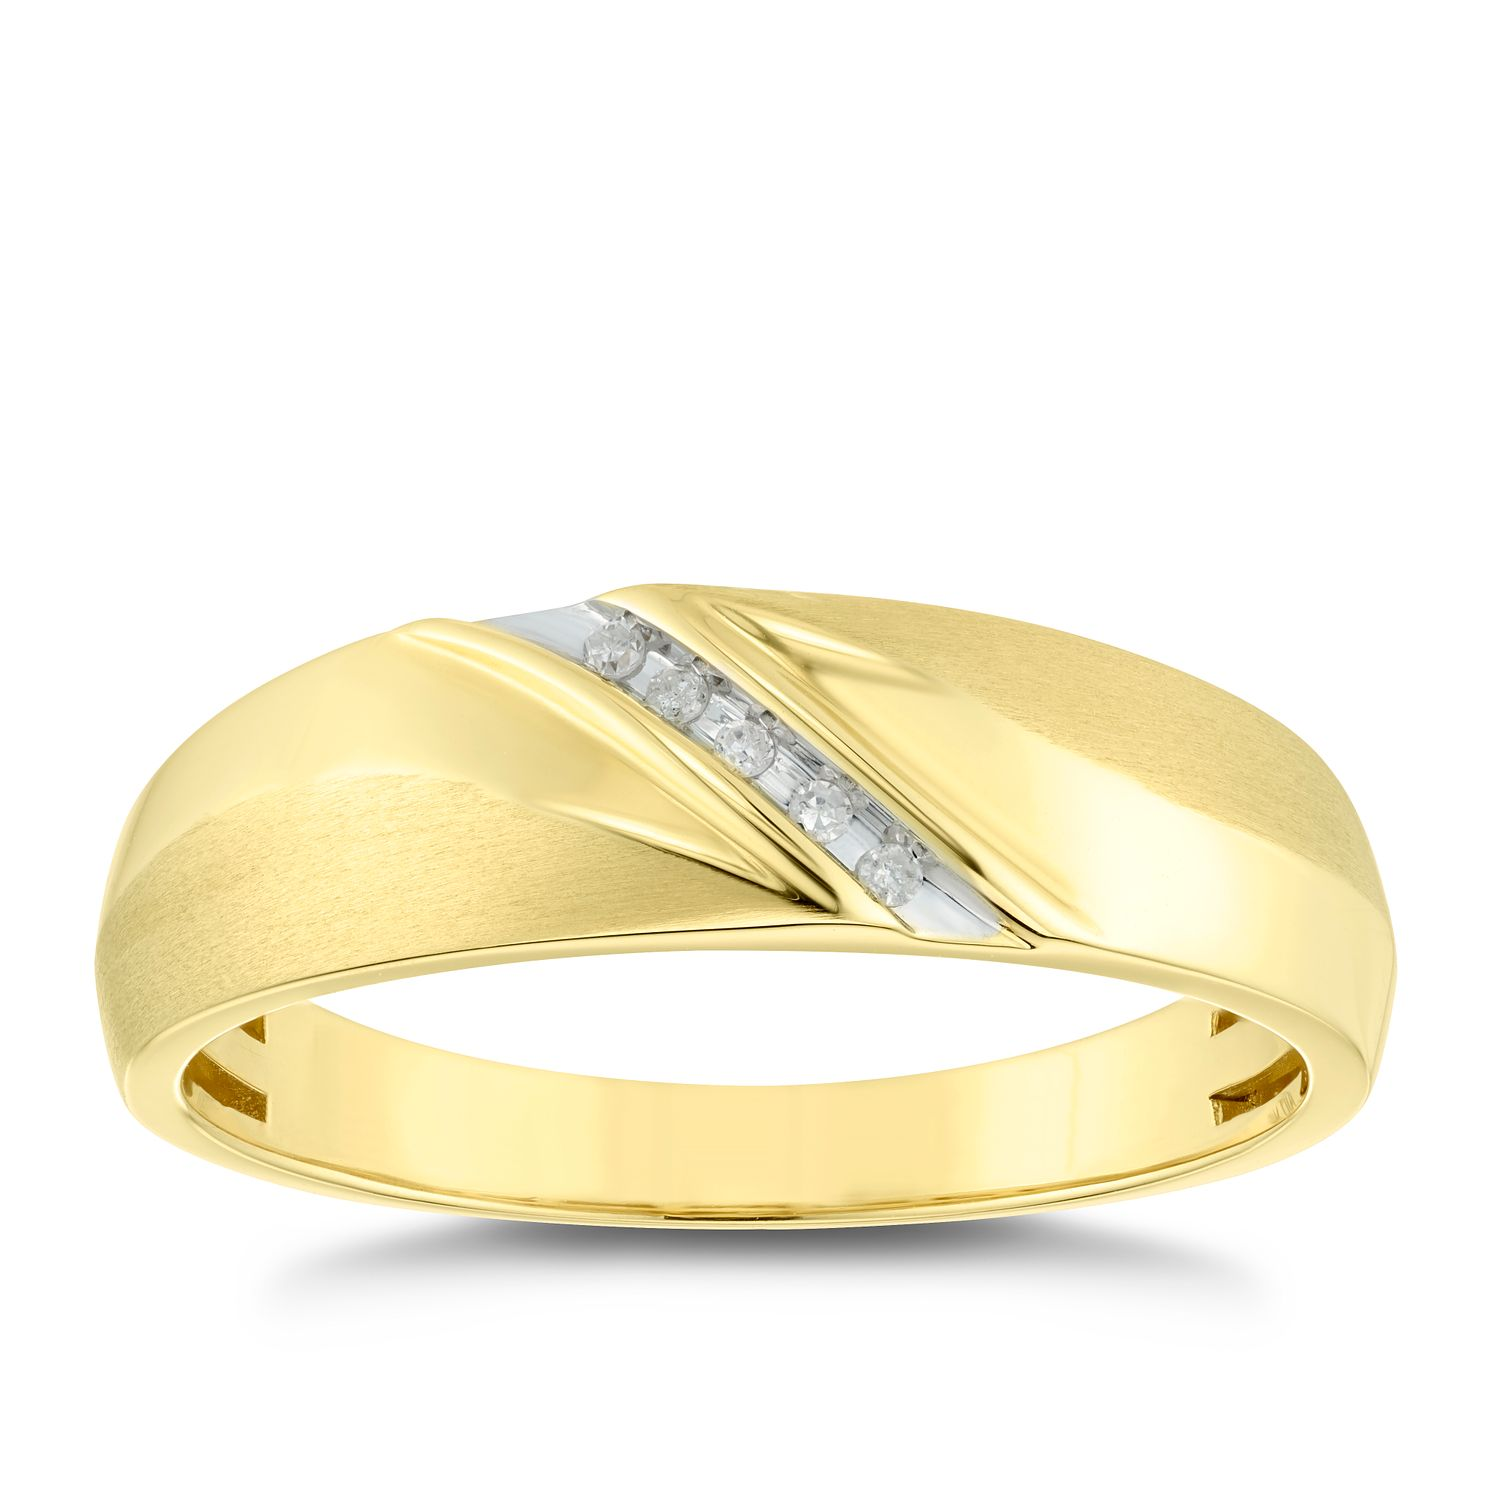 9ct Yellow Gold Men's Diamond Ring - Product number 4910974